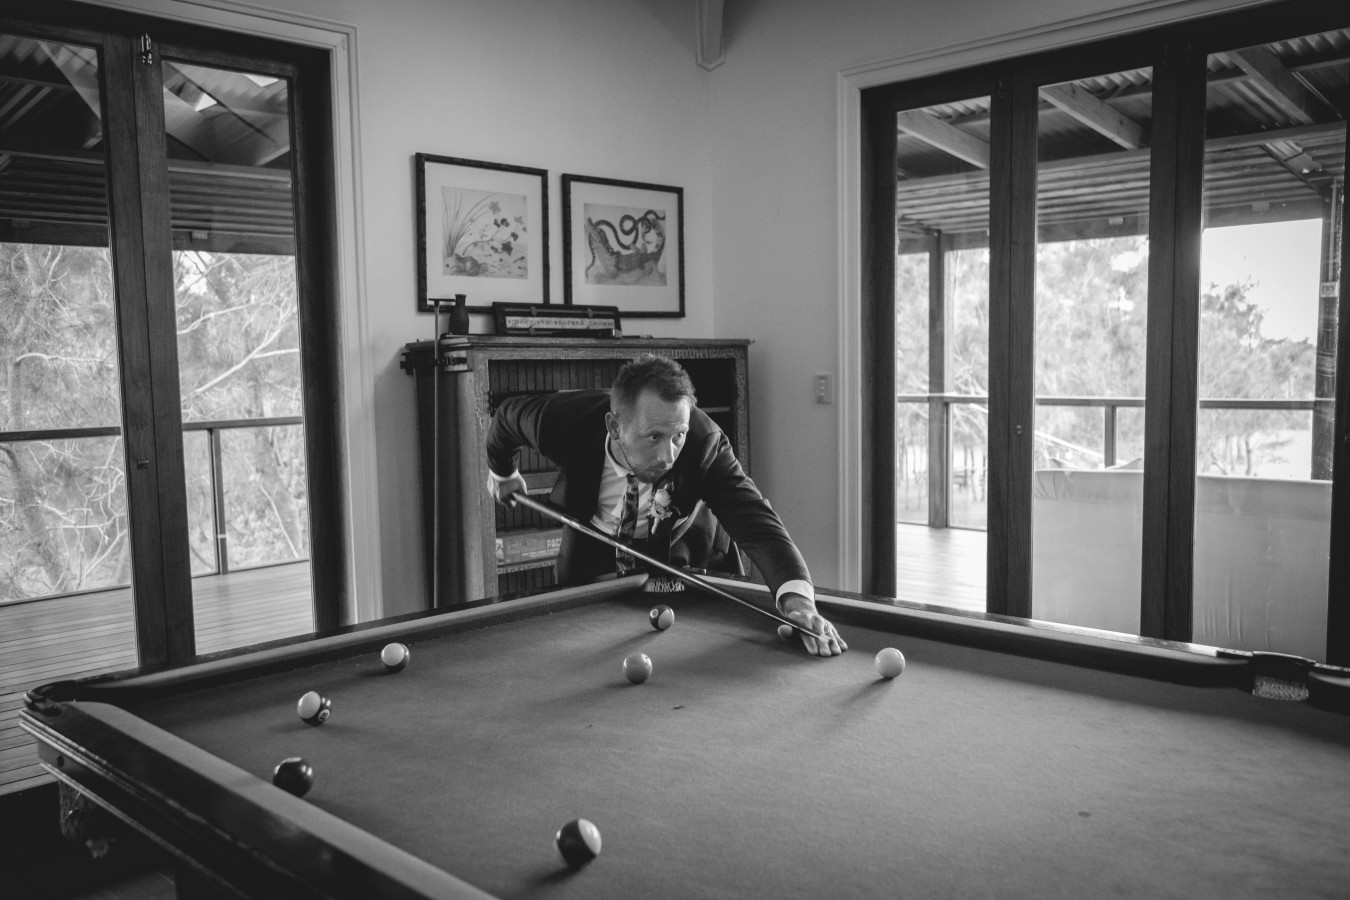 Pat playing pool b+w